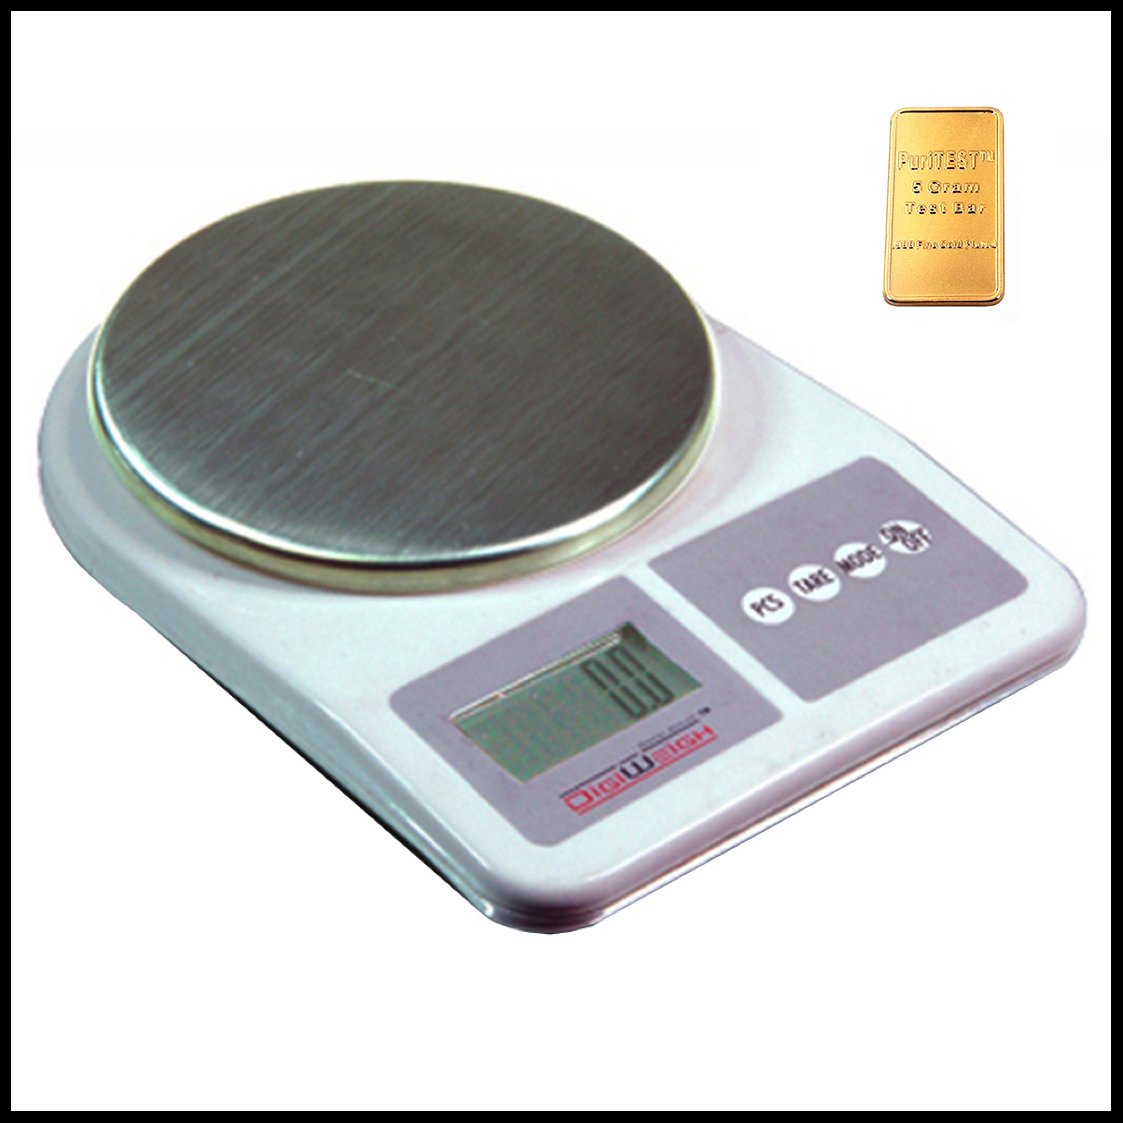 DigiWeigh Dwp-1001 Digital Table Top Jewelry Scale 1000x0.1g, Lock, Silverplate, Case, Handpainted, Ring